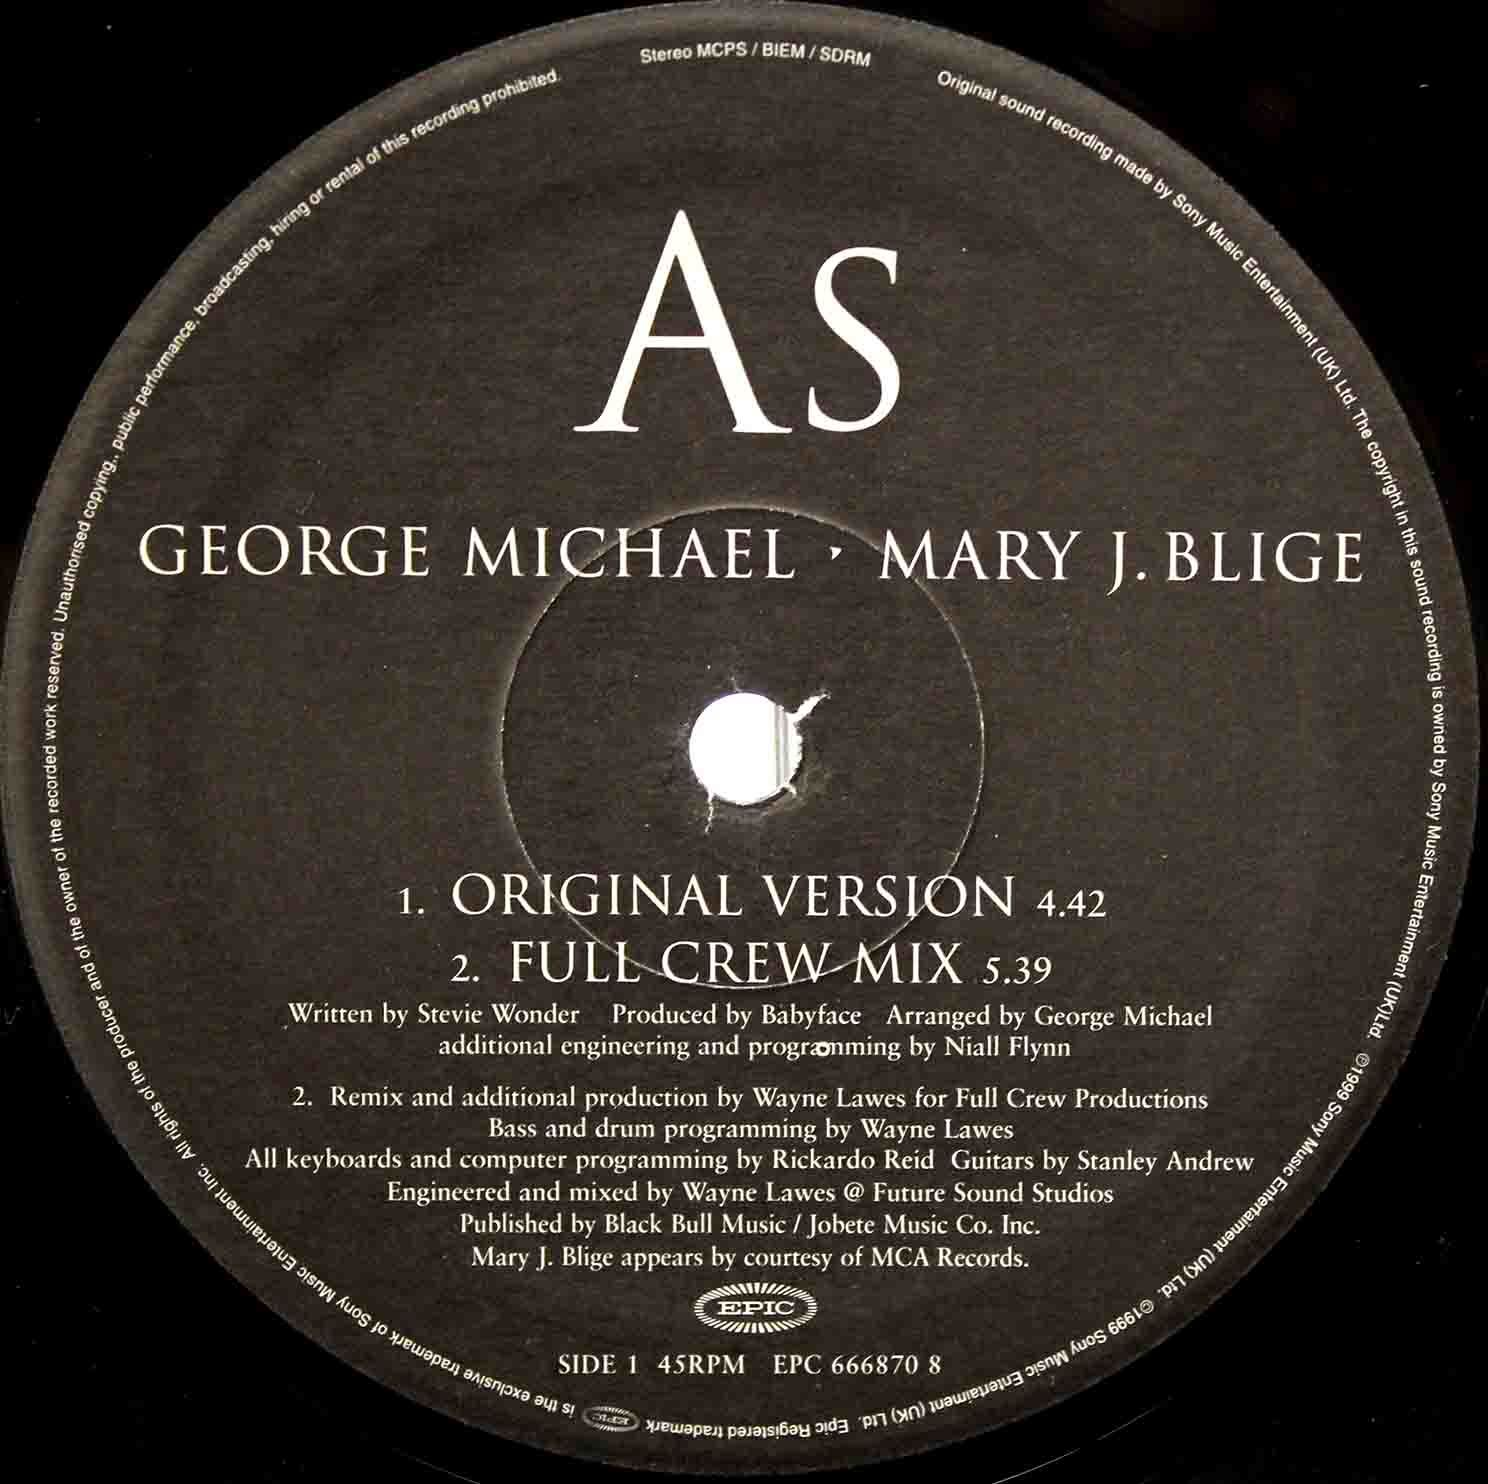 George Michael Mary J Blige - As 04